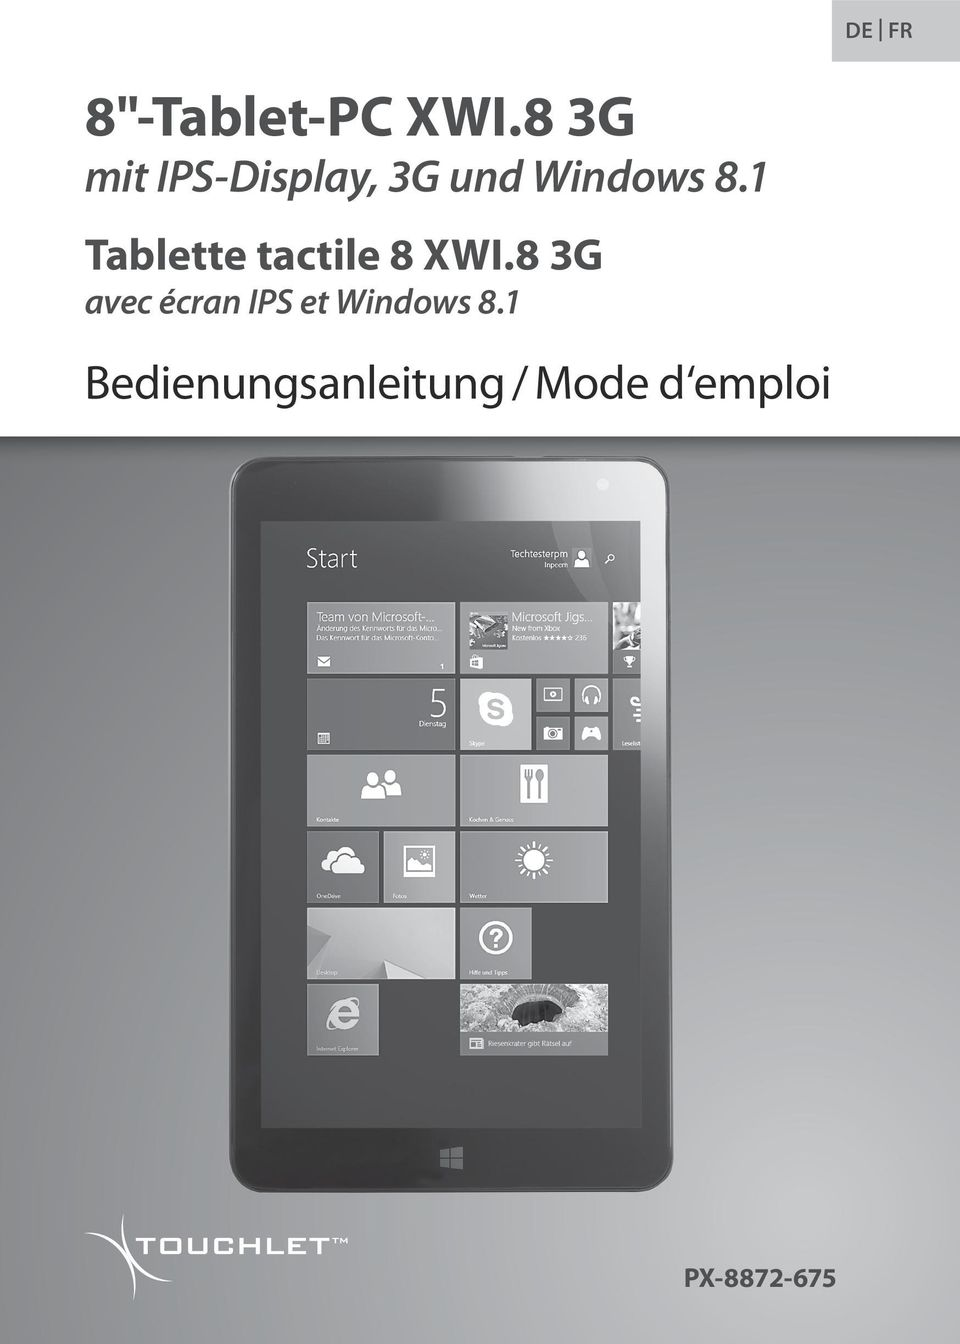 1 Tablette tactile 8 XWI.